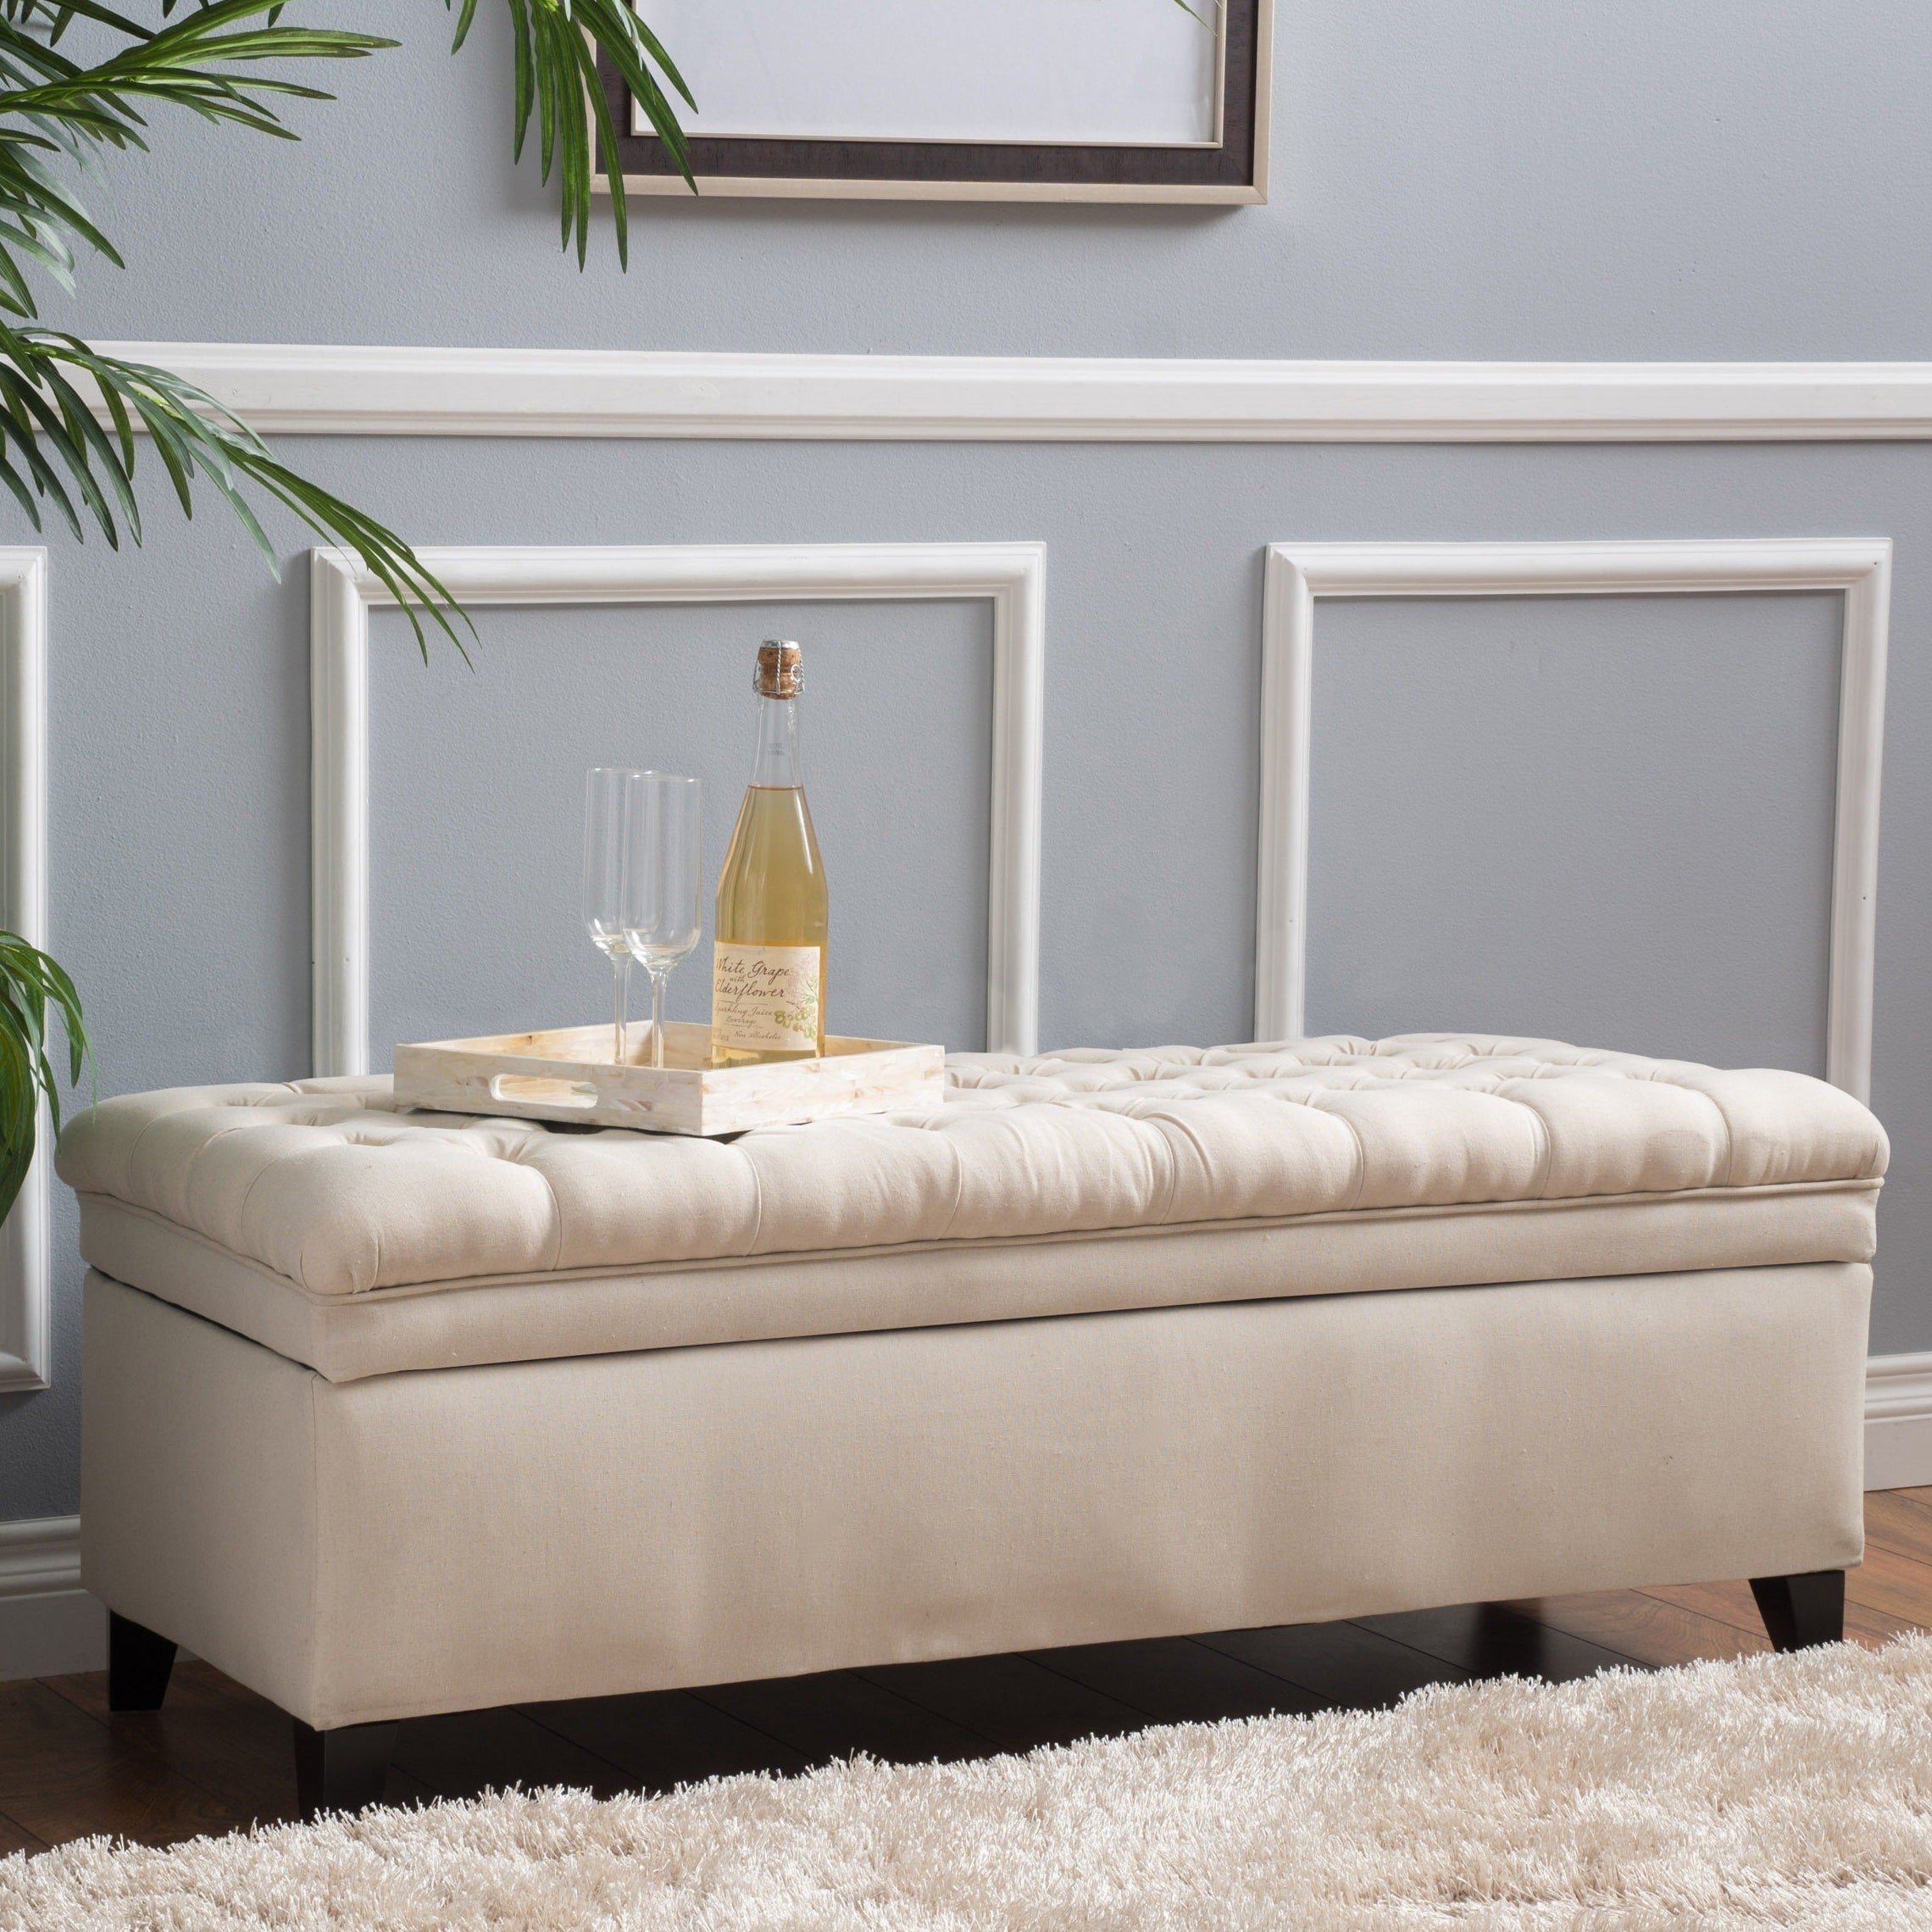 Hastings Tufted Fabric Storage